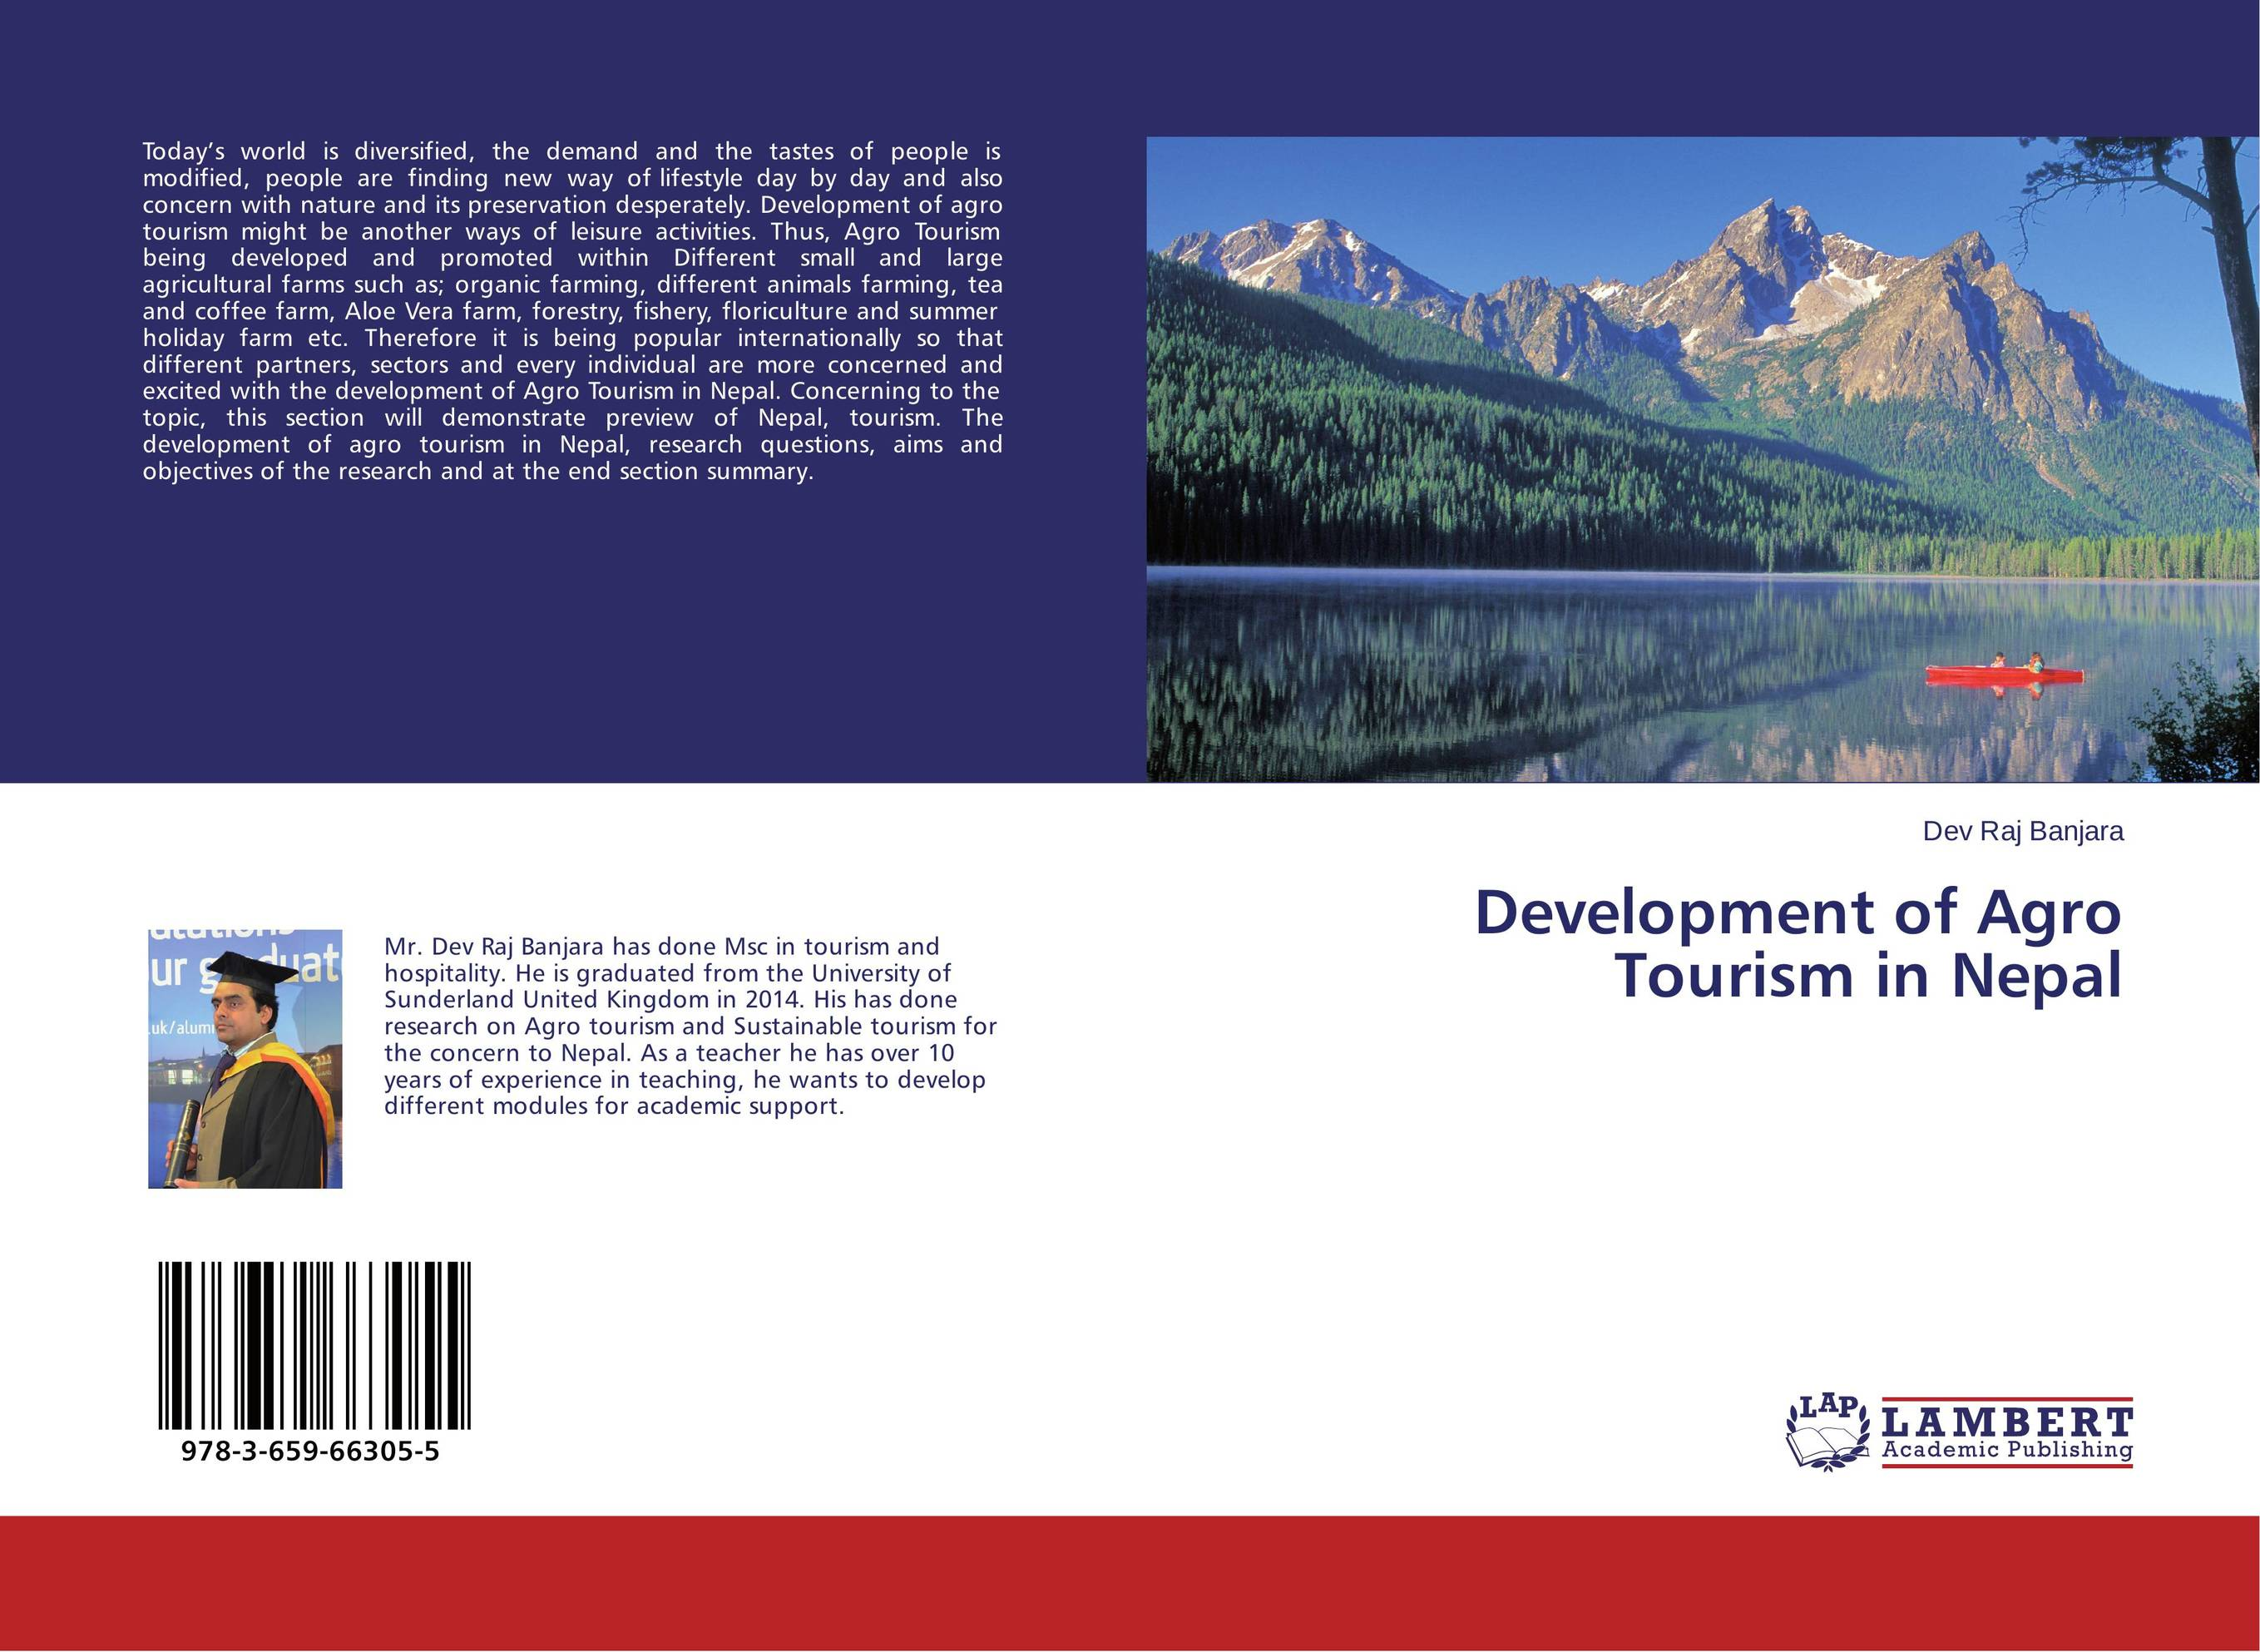 Development of Agro Tourism in Nepal